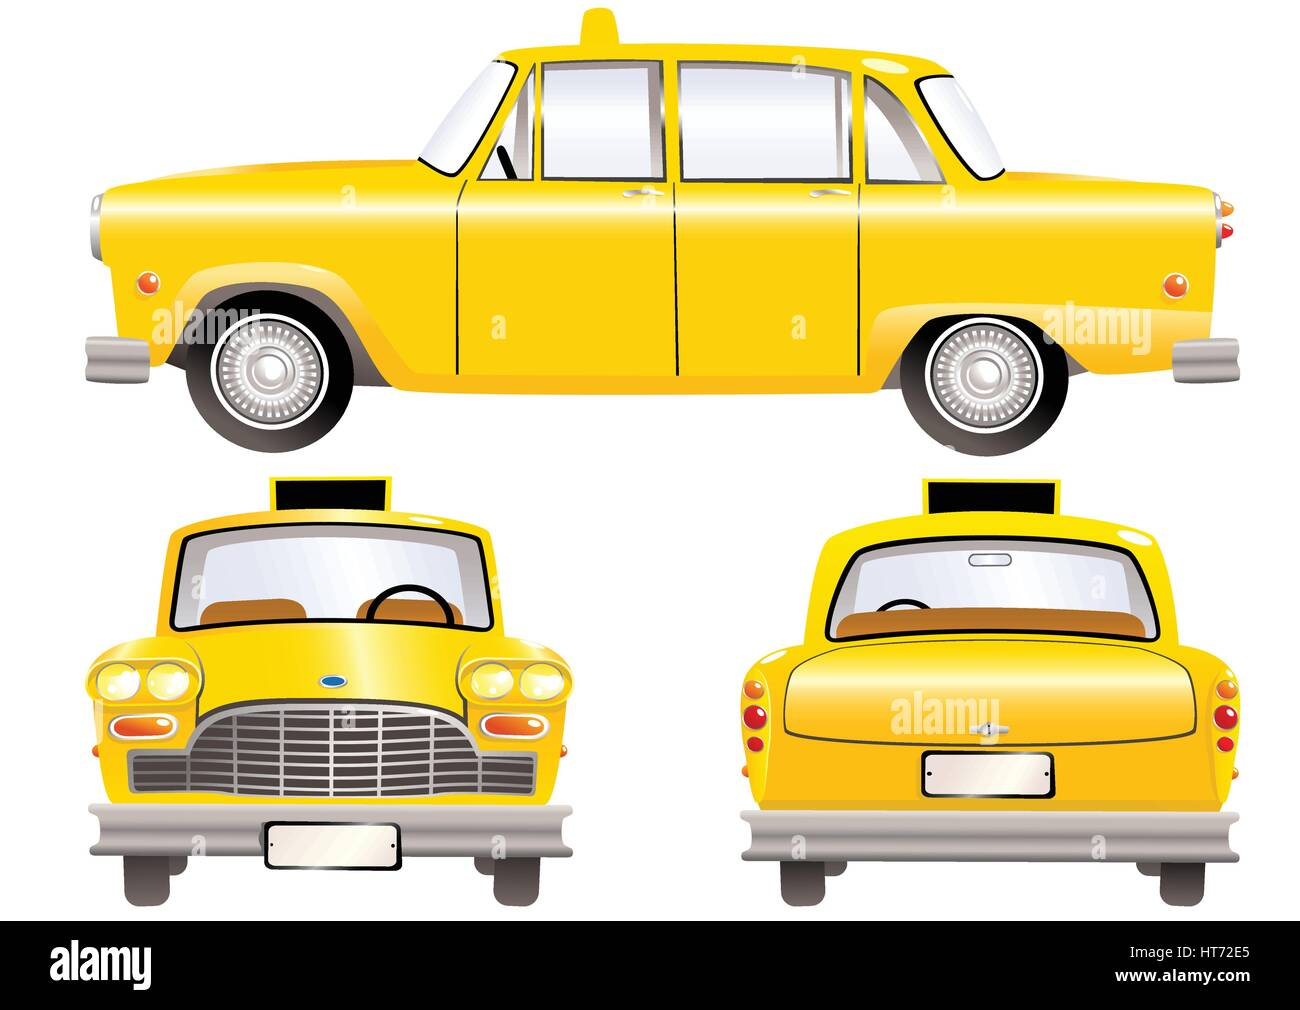 Three illustrations of an old fashioned yellow taxi cab